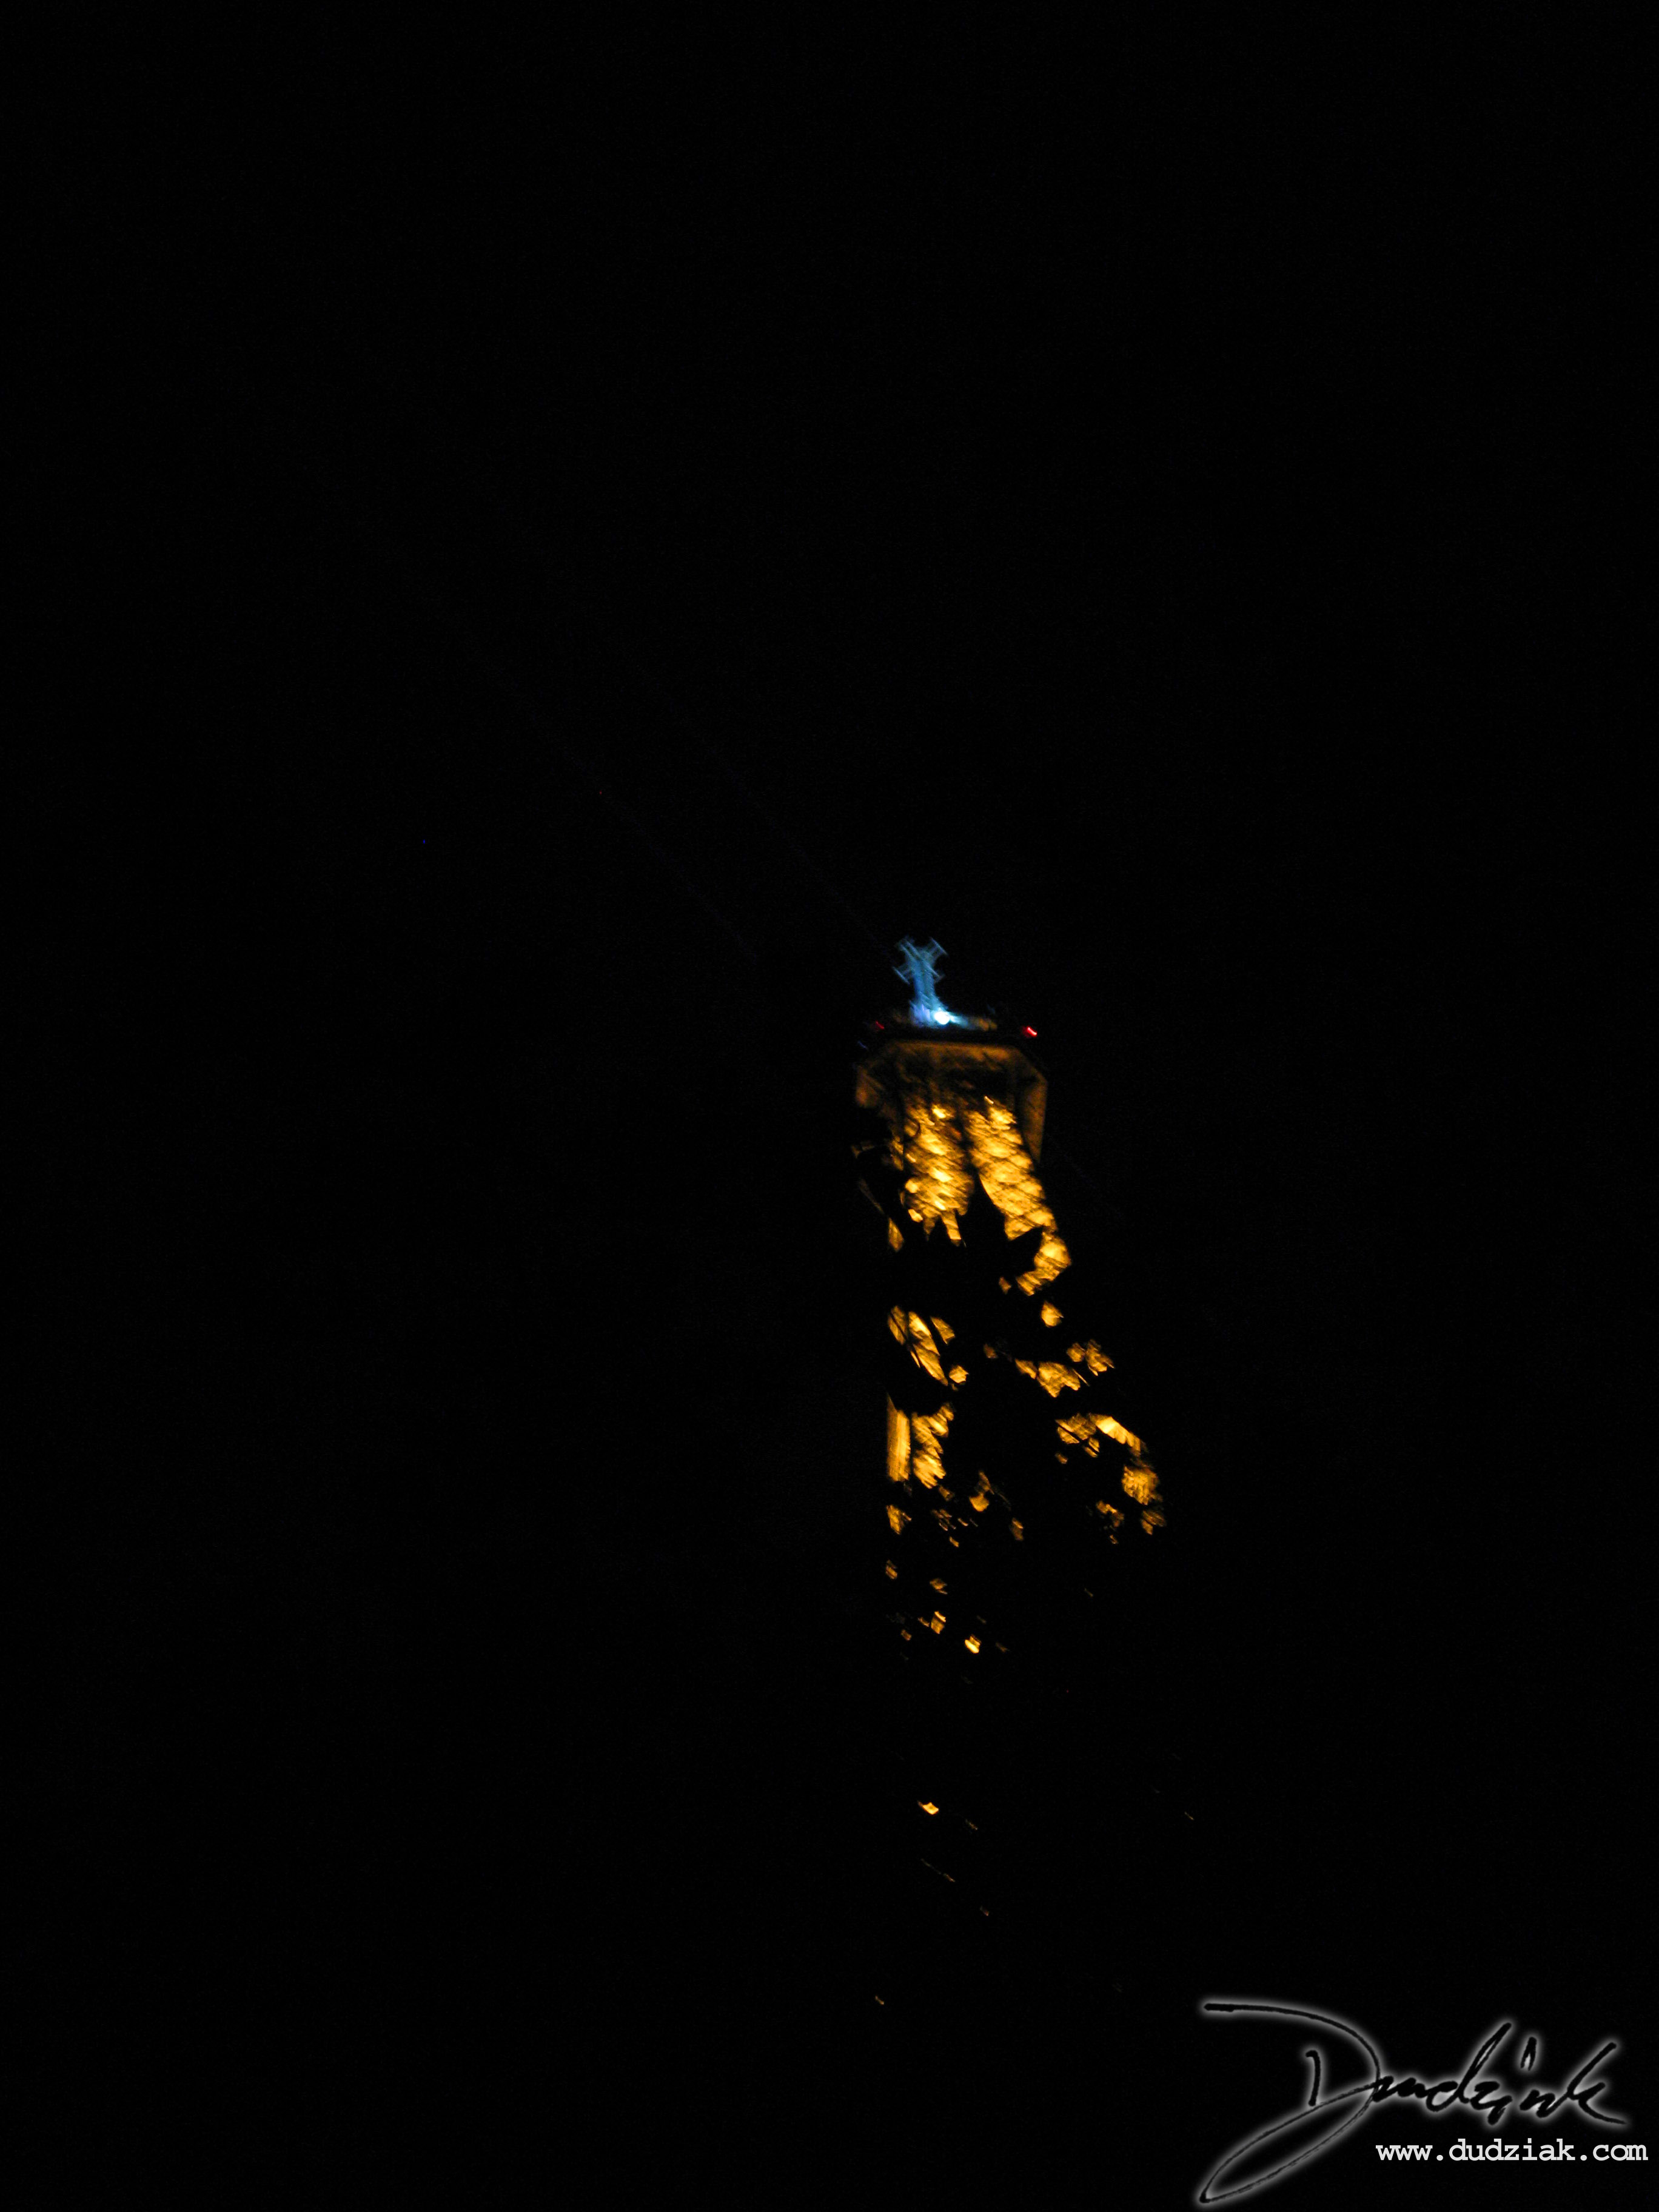 Trees,  tour eiffel,  Bastille Day,  Night,  Blurry,  Paris France,  Eiffel Tower